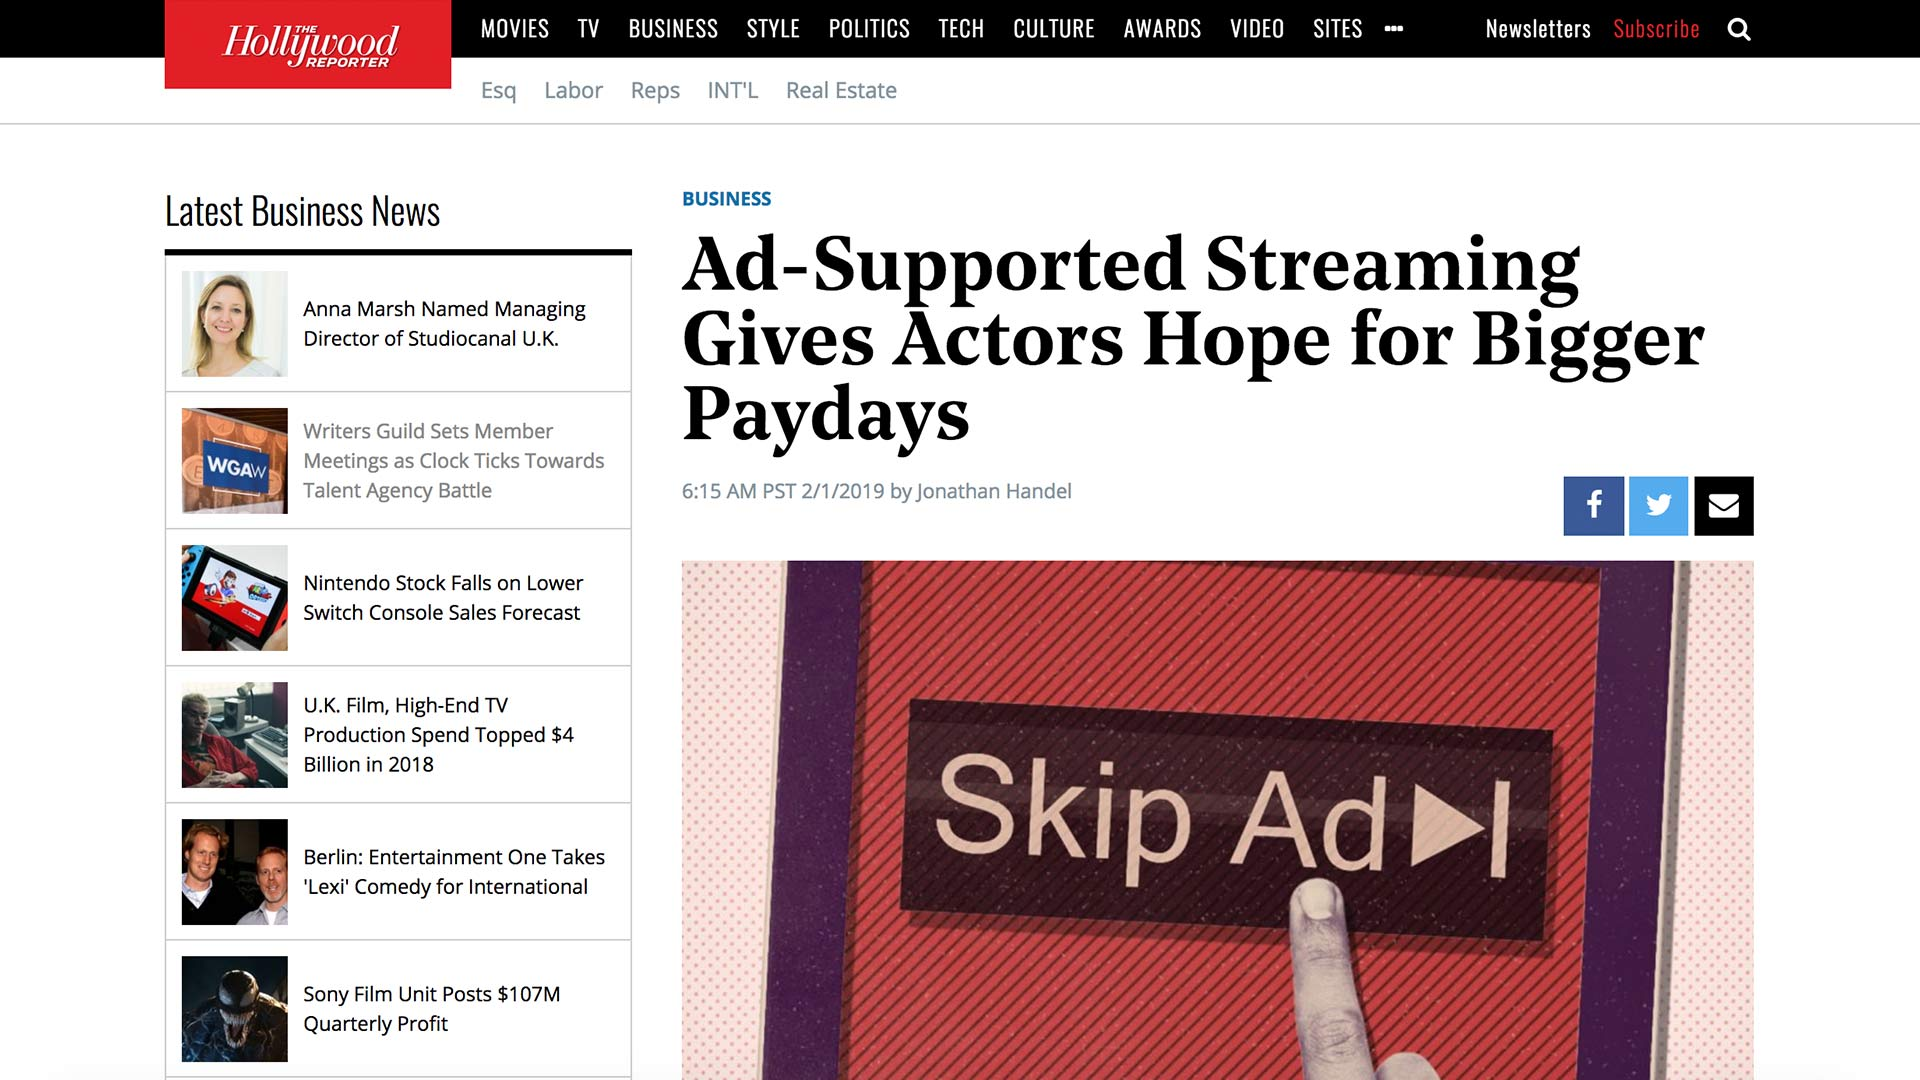 Fairness Rocks News Ad-Supported Streaming Gives Actors Hope for Bigger Paydays